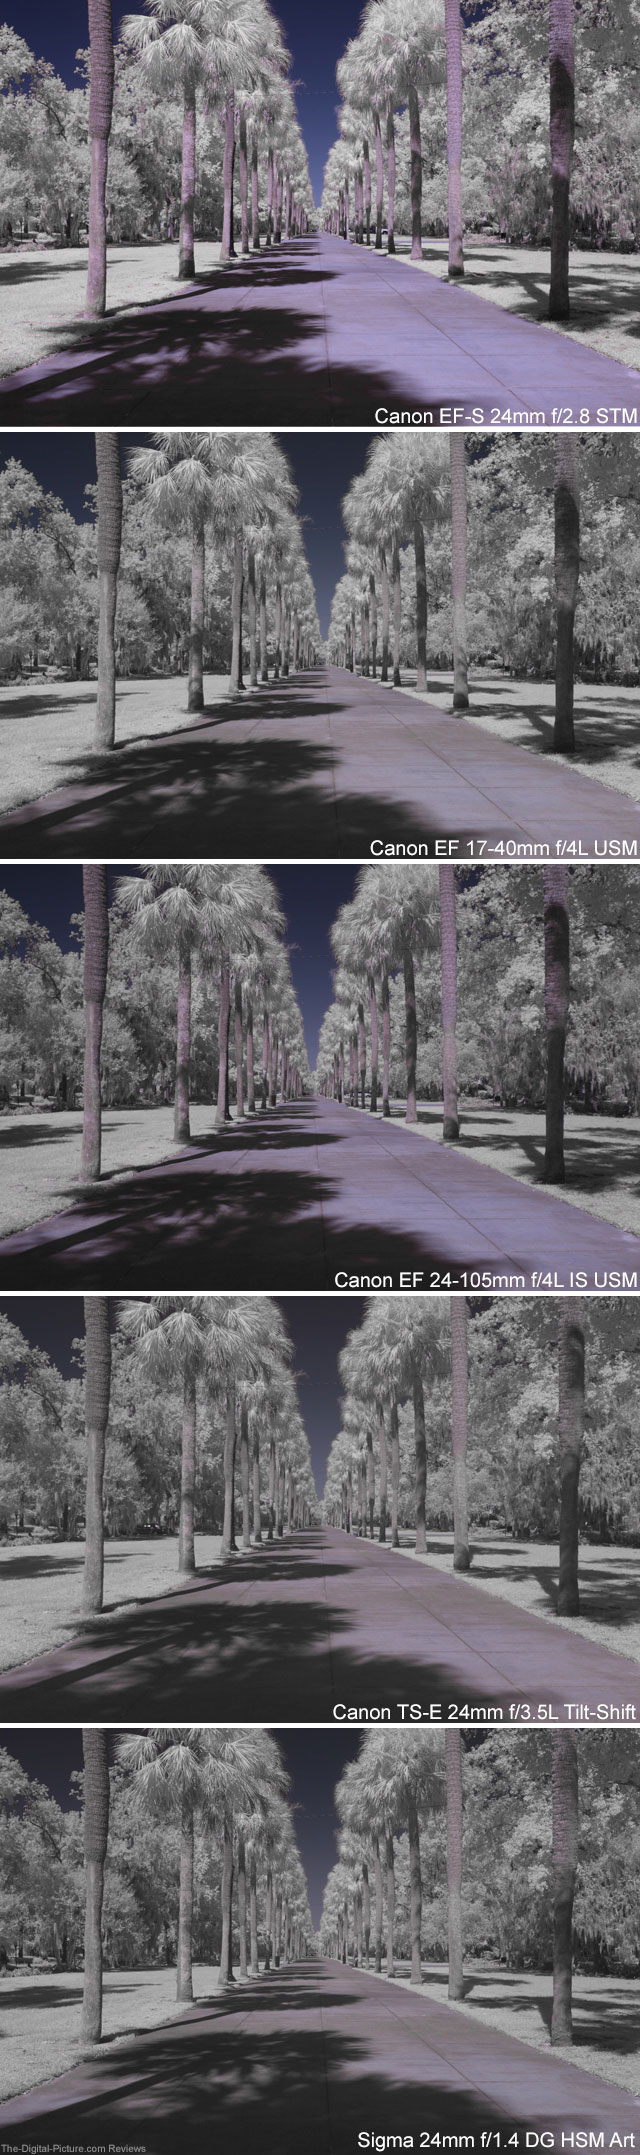 Infrared Lens Comparison at 24mm